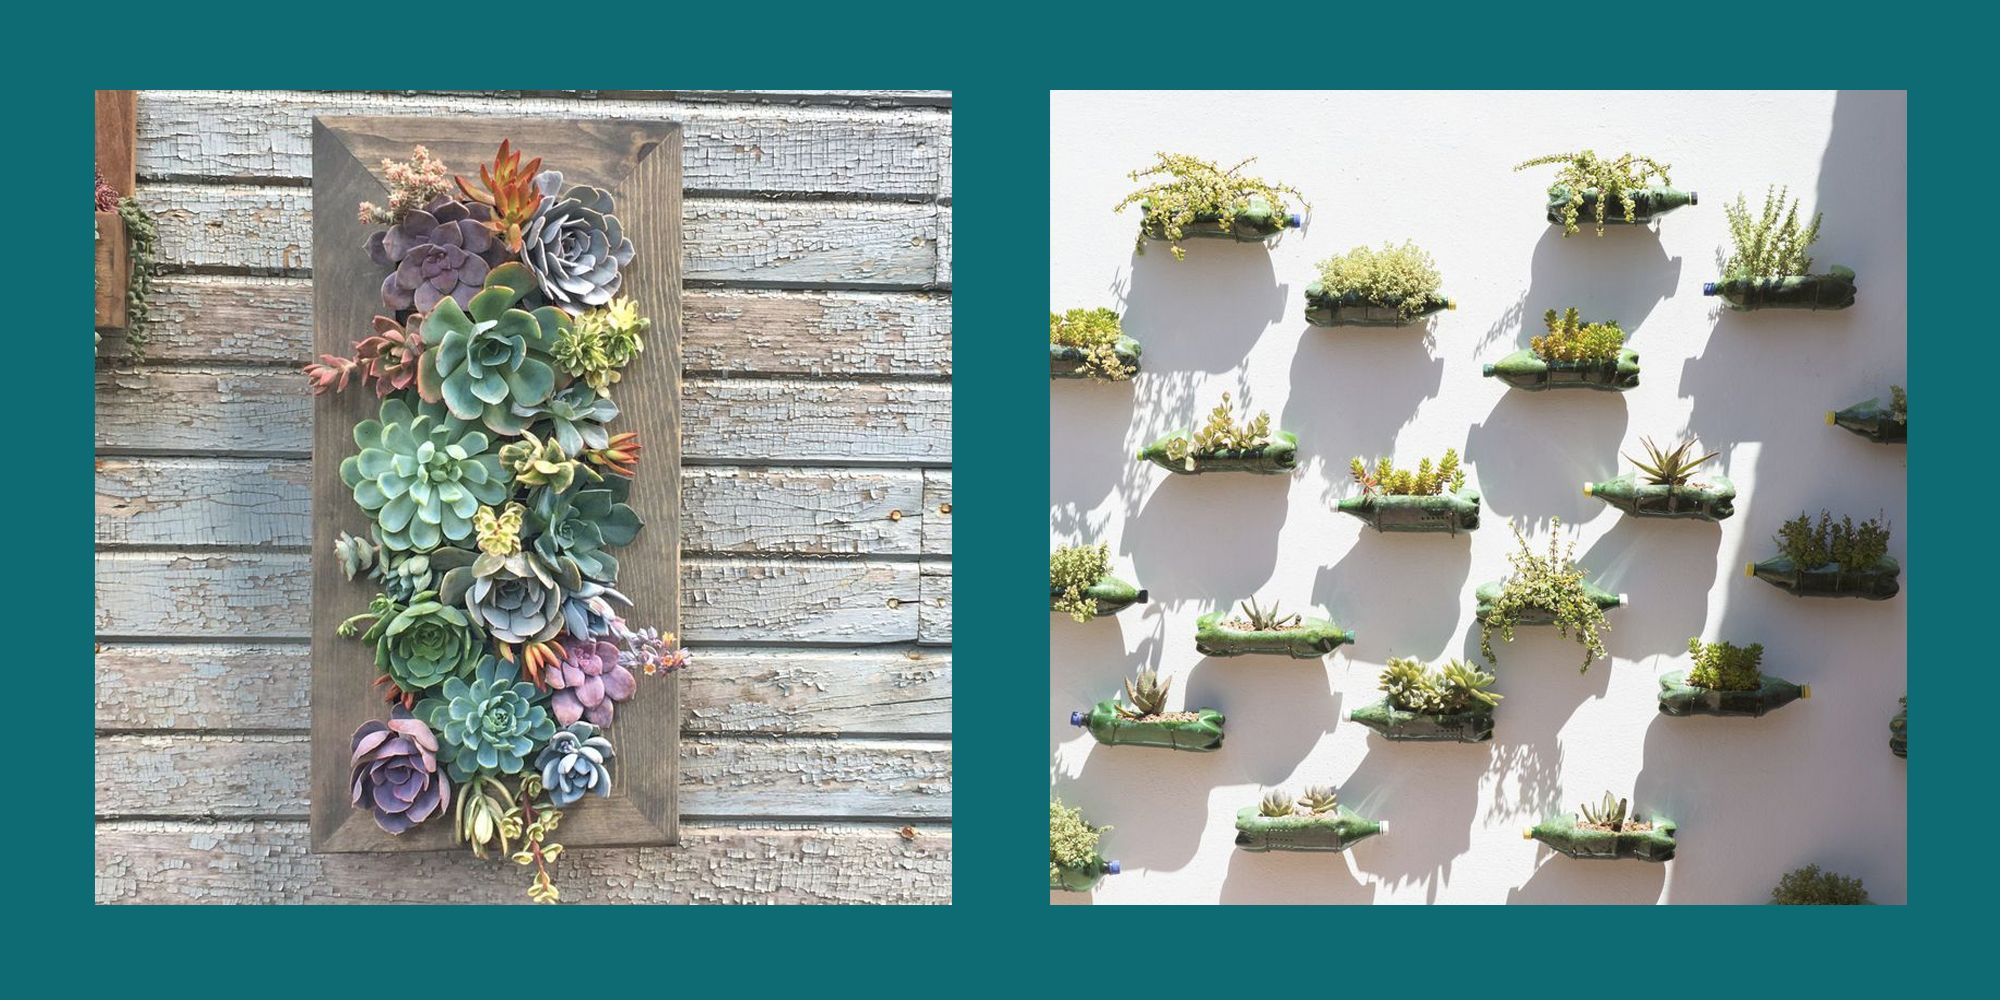 10 Brilliant Vertical Garden Ideas - Interesting Vertical Garden